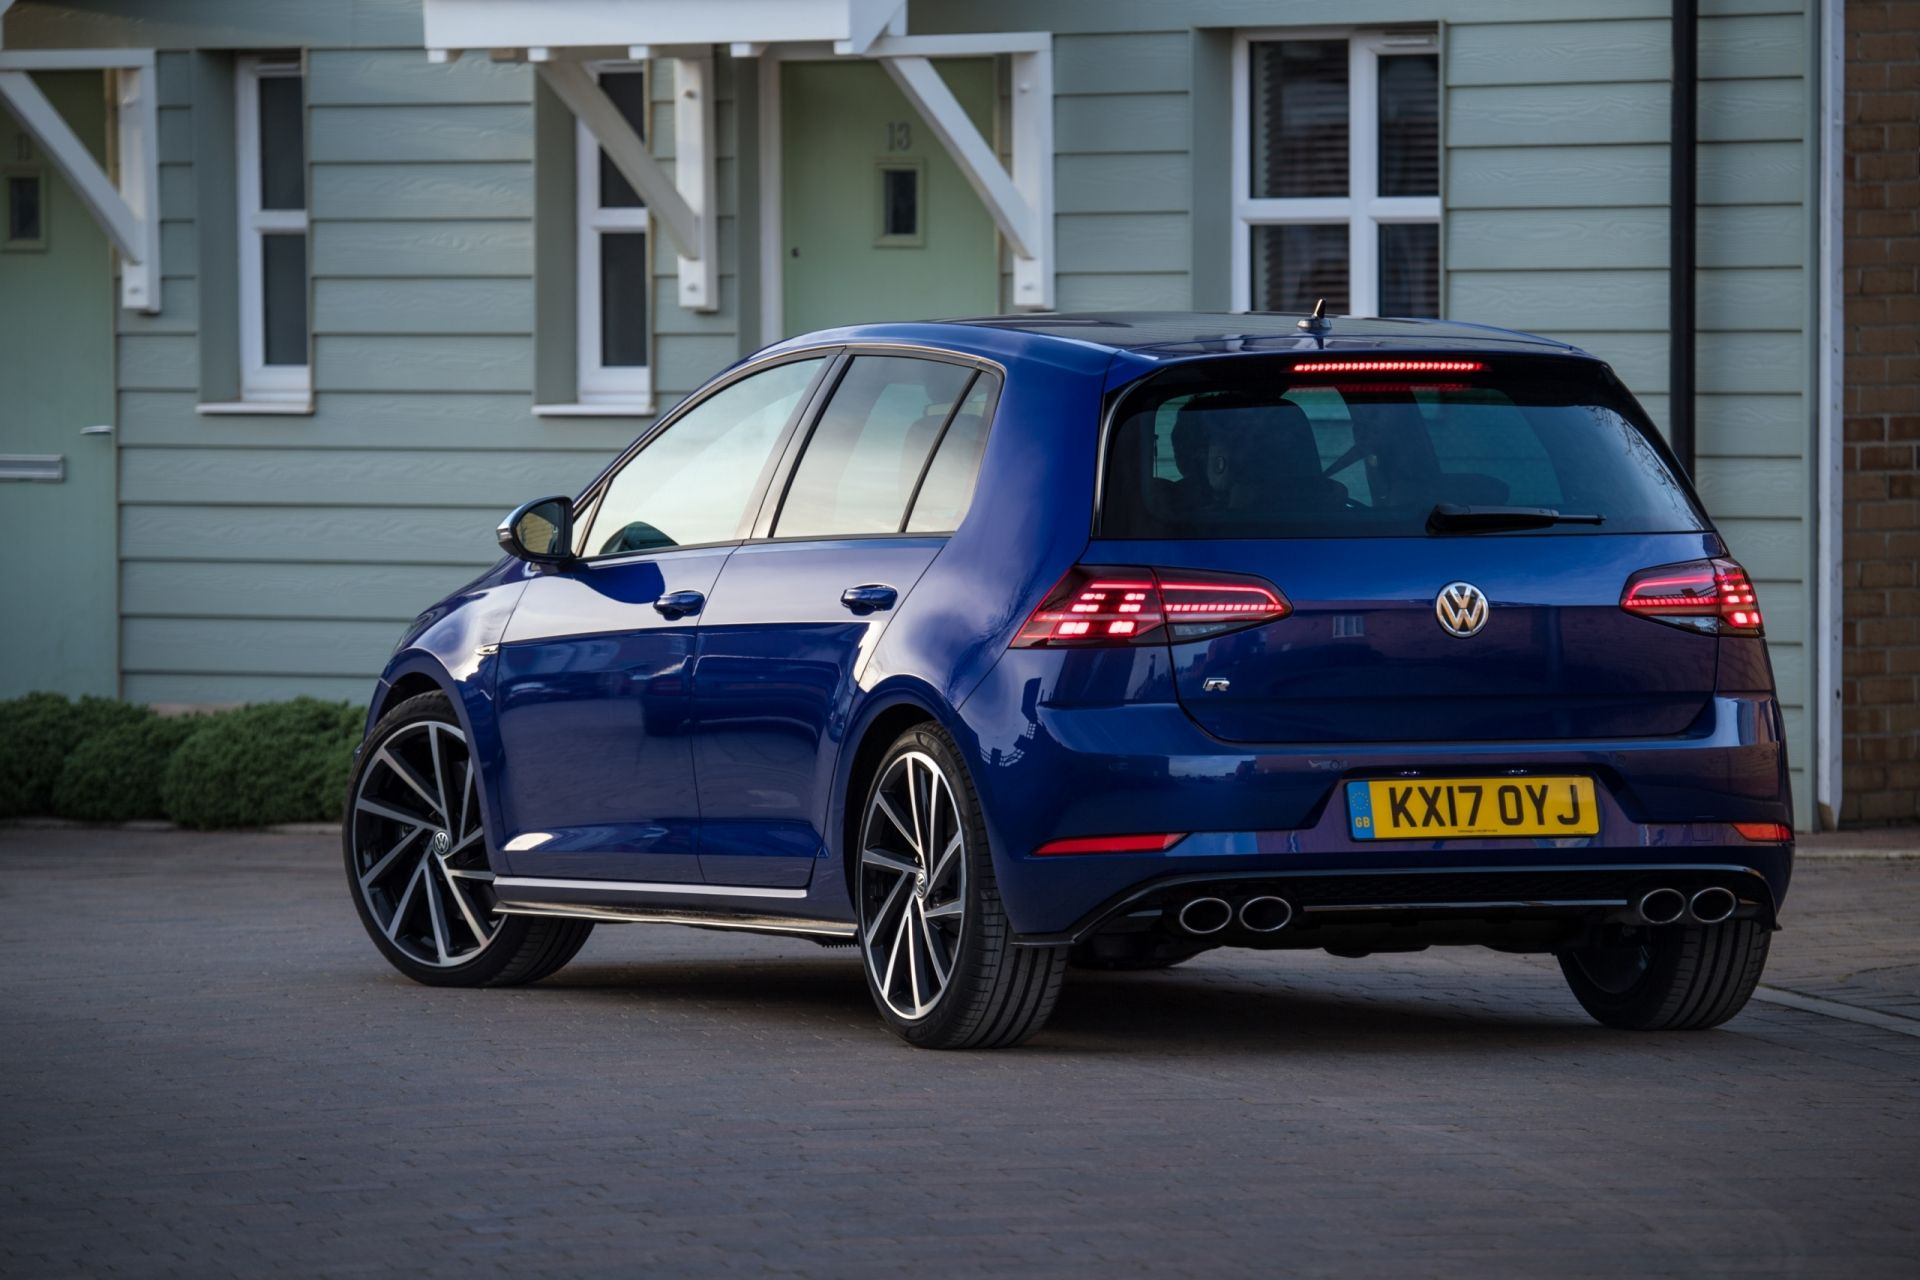 Volkswagen Group will discontinue the Golf R series later this year, an official statement says. According to the company, the hot hatch will make room for more affordable and environment-friendlier vehicles.